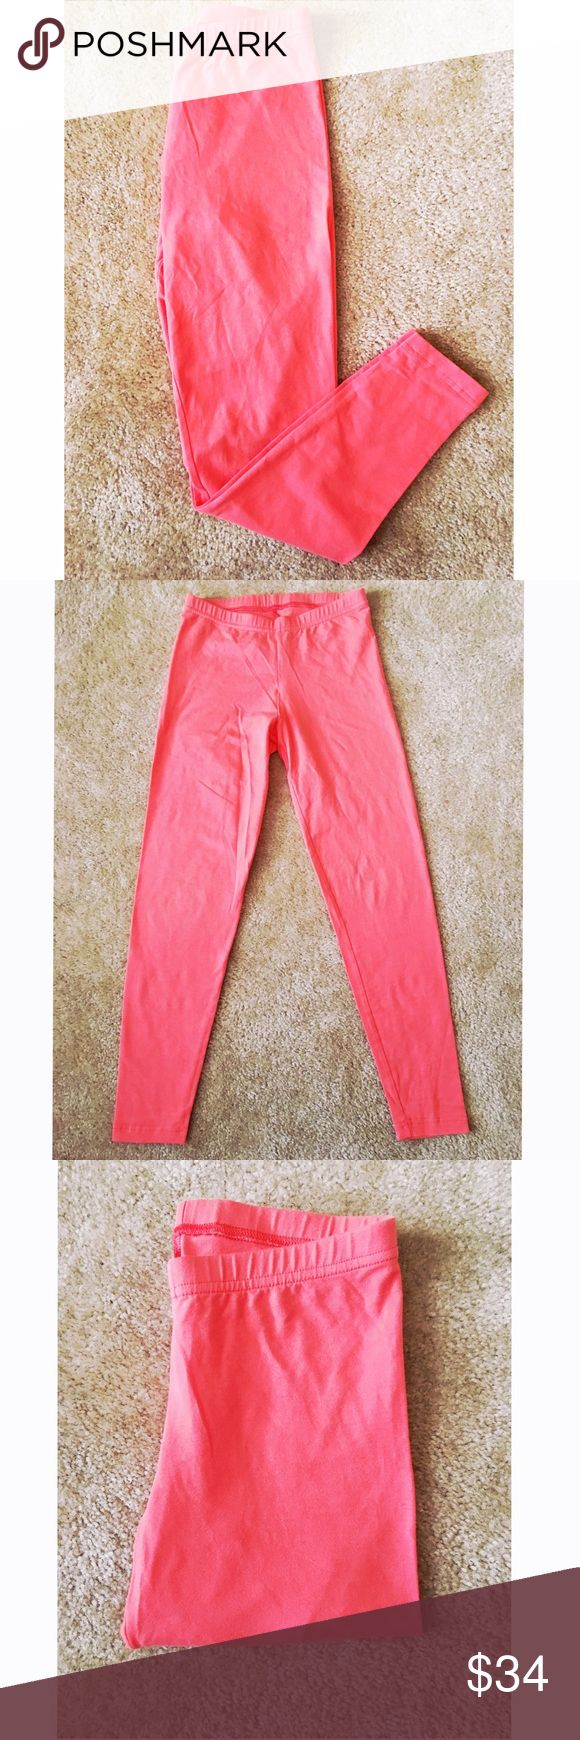 American Apparel Pink Leggings Perfect for The Spring + Summer! You can wear these with just about anything! They are so comfortable + has a little stretch to them. Very well taken care of with no rips or stains + 🚭 of course!  If you anyone has any questions ask away! I'm always up for offers. 💕💕 Have a wonderful day! American Apparel Pants Leggings